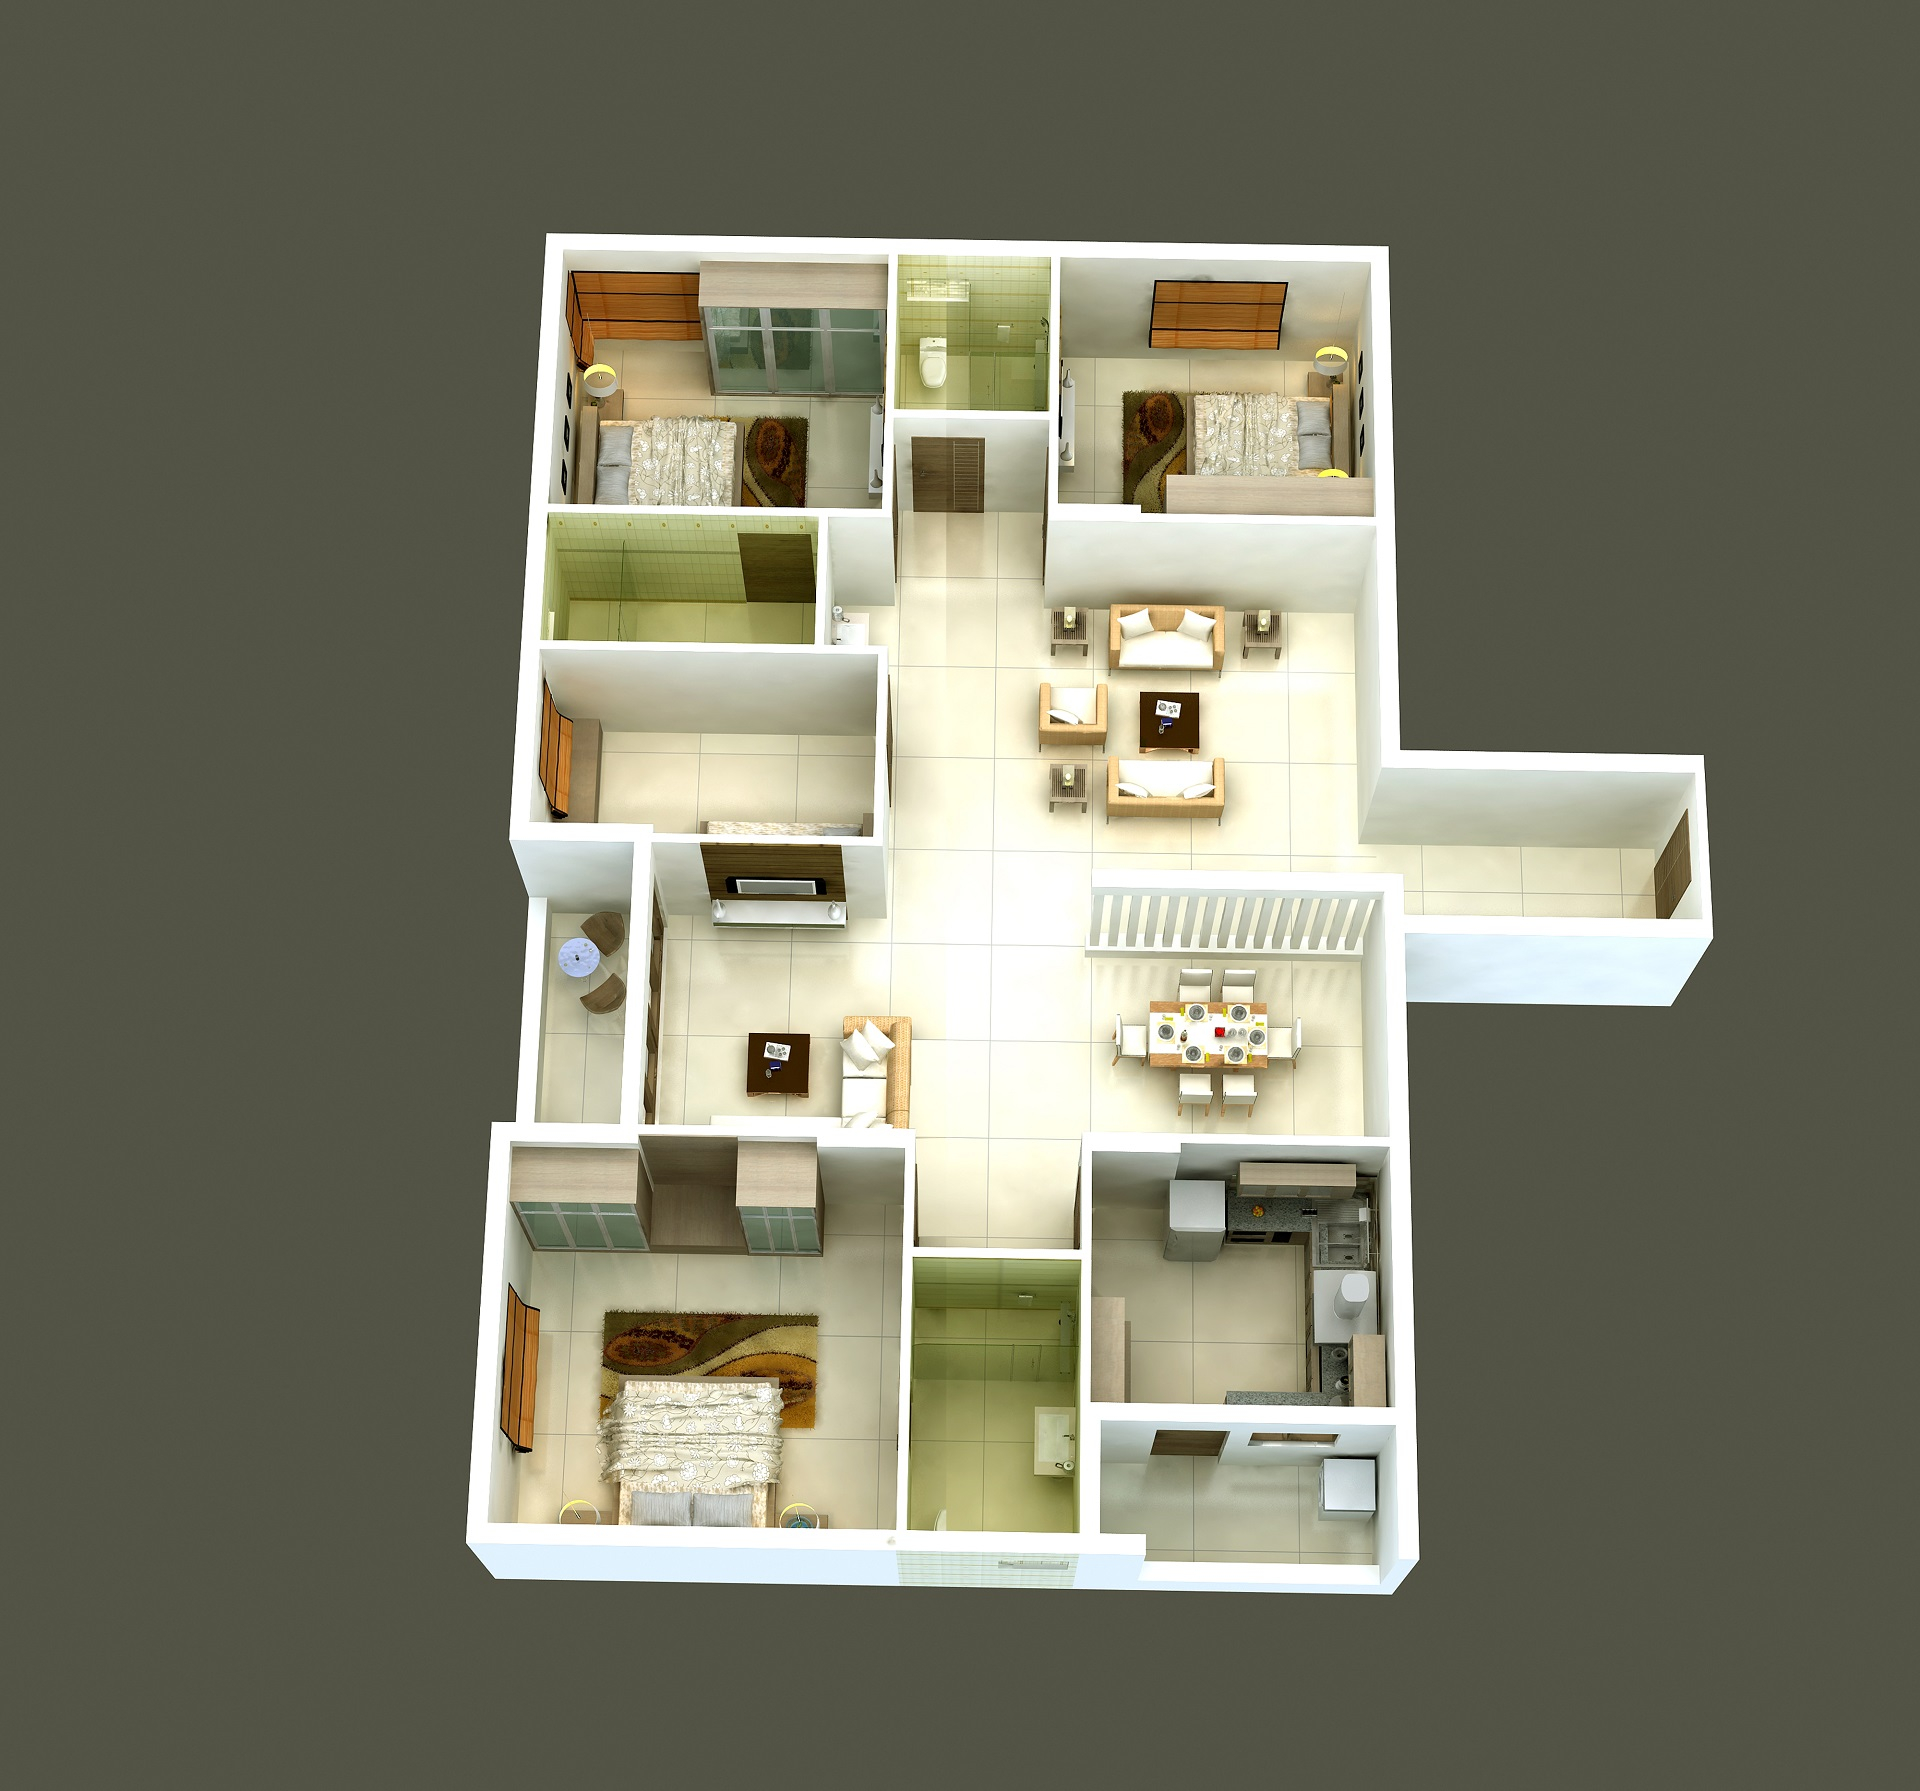 ar-concepts-emami-apartment-residential-east-five-bedroom-image-a